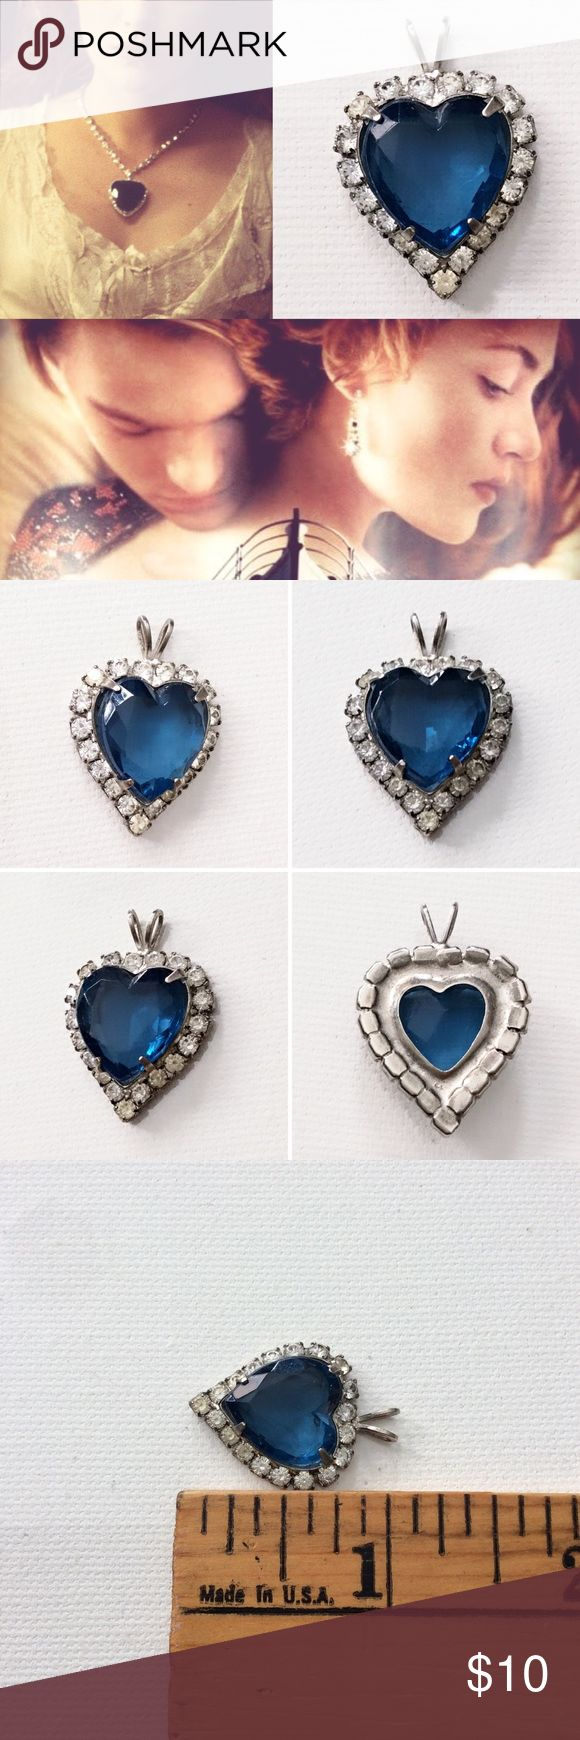 90's TITANIC inspired Heart of the Ocean pendant Fun 90s NOSTALGIA if you remember when the movie Titanic came out!  I got this as a teenager in the late 1990's.  Rhinestones set in metal with plastic heart.  Minor scratches on the heart, but they're so tiny it was hard to get them in a photo. Look at the last photo to see what I mean.  Put it on a rhinestone necklace and it will look like a mini version of the necklace in the movie!  Also cute on a simple black choker or silver chain…